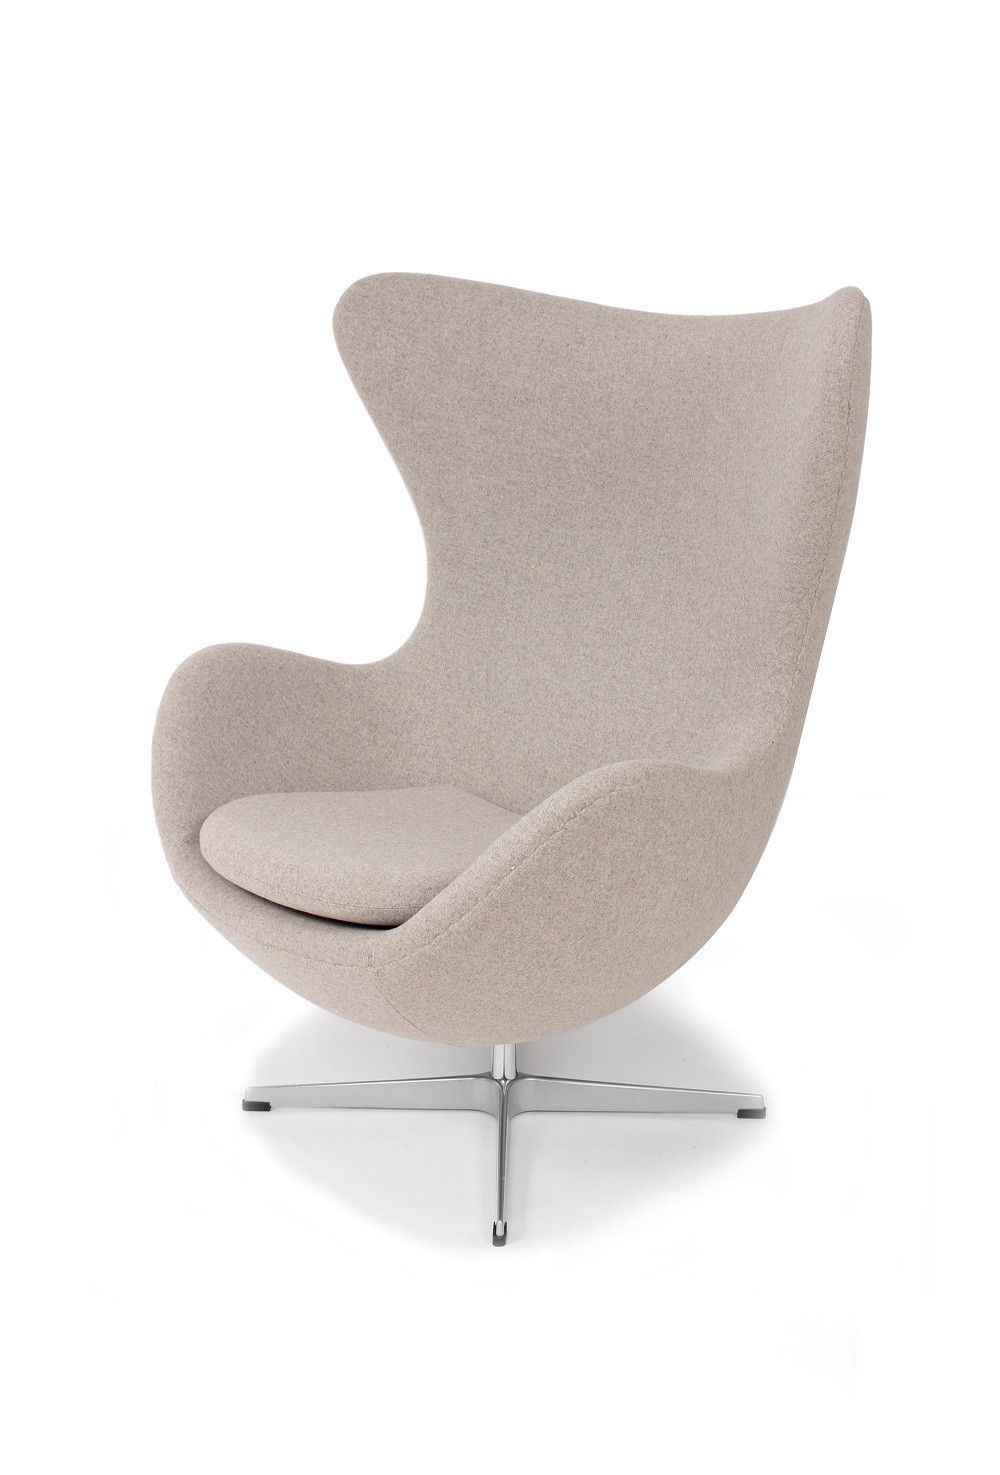 Captivating Mid Century Egg Chair   Wheat